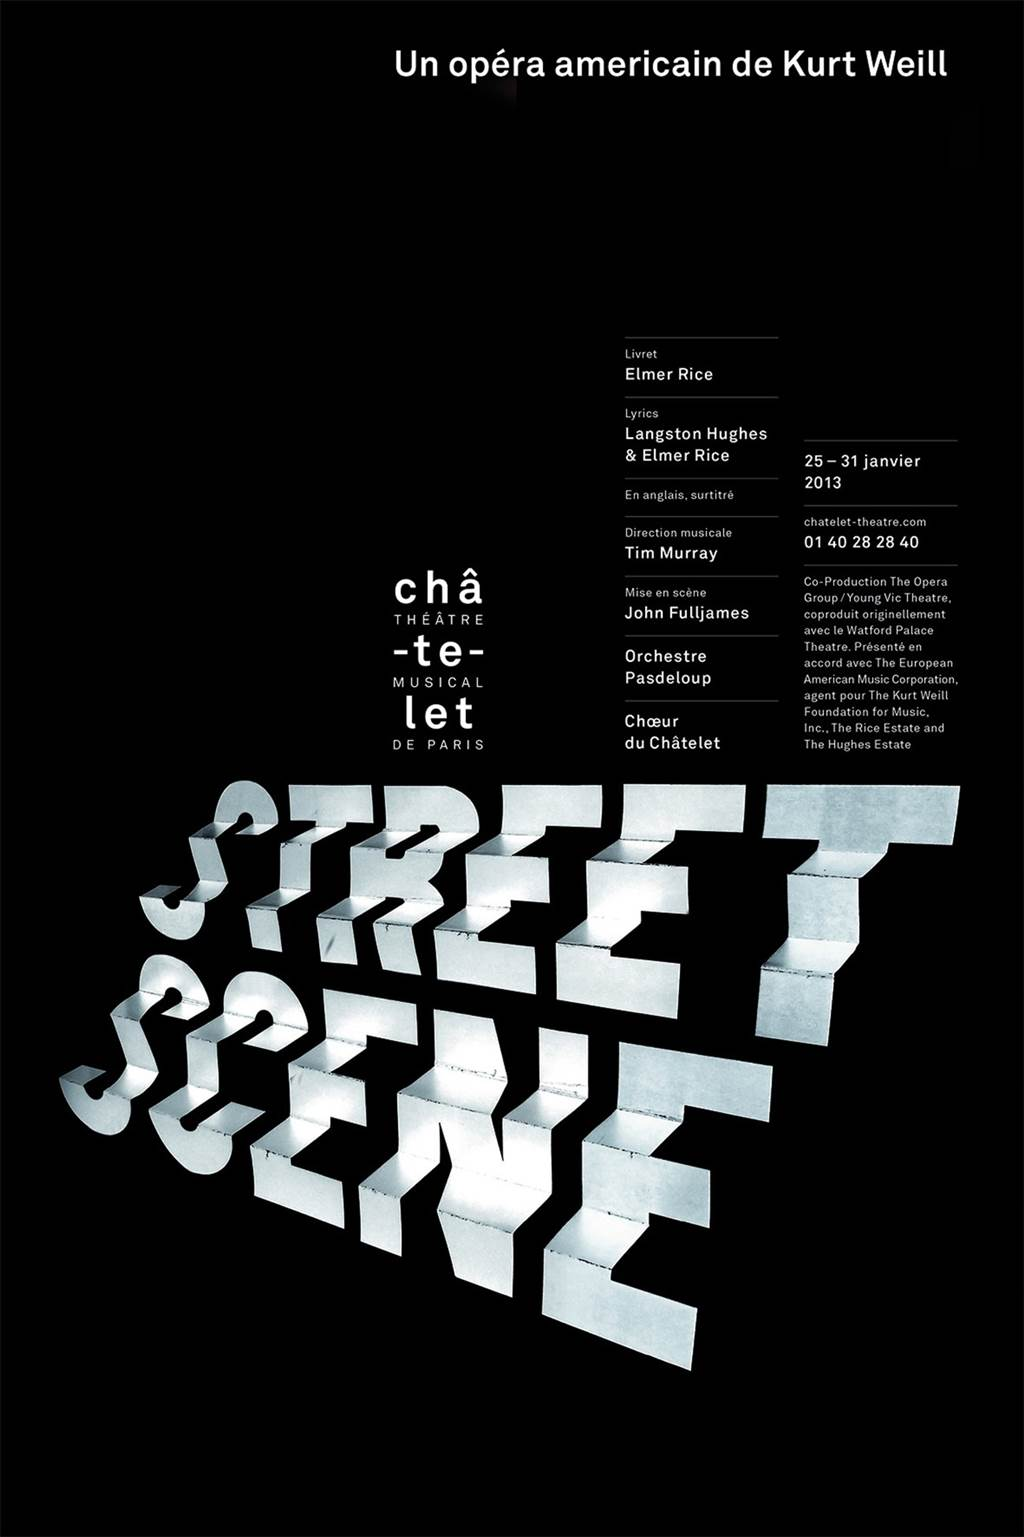 Well Designed Creative Posters